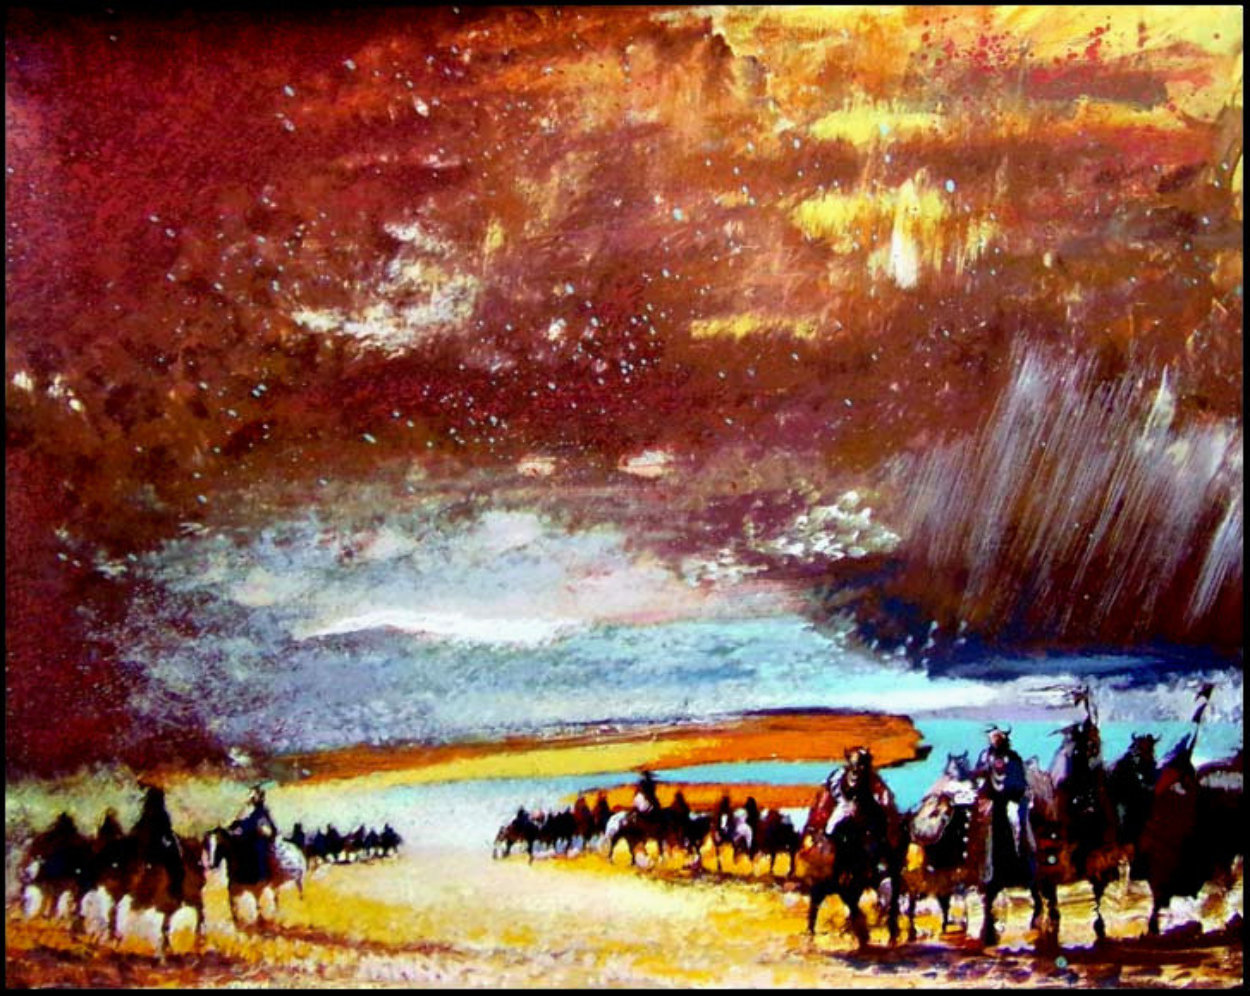 They Stood Like the Glory of the Sun 1995 Limited Edition Print by Earl Biss